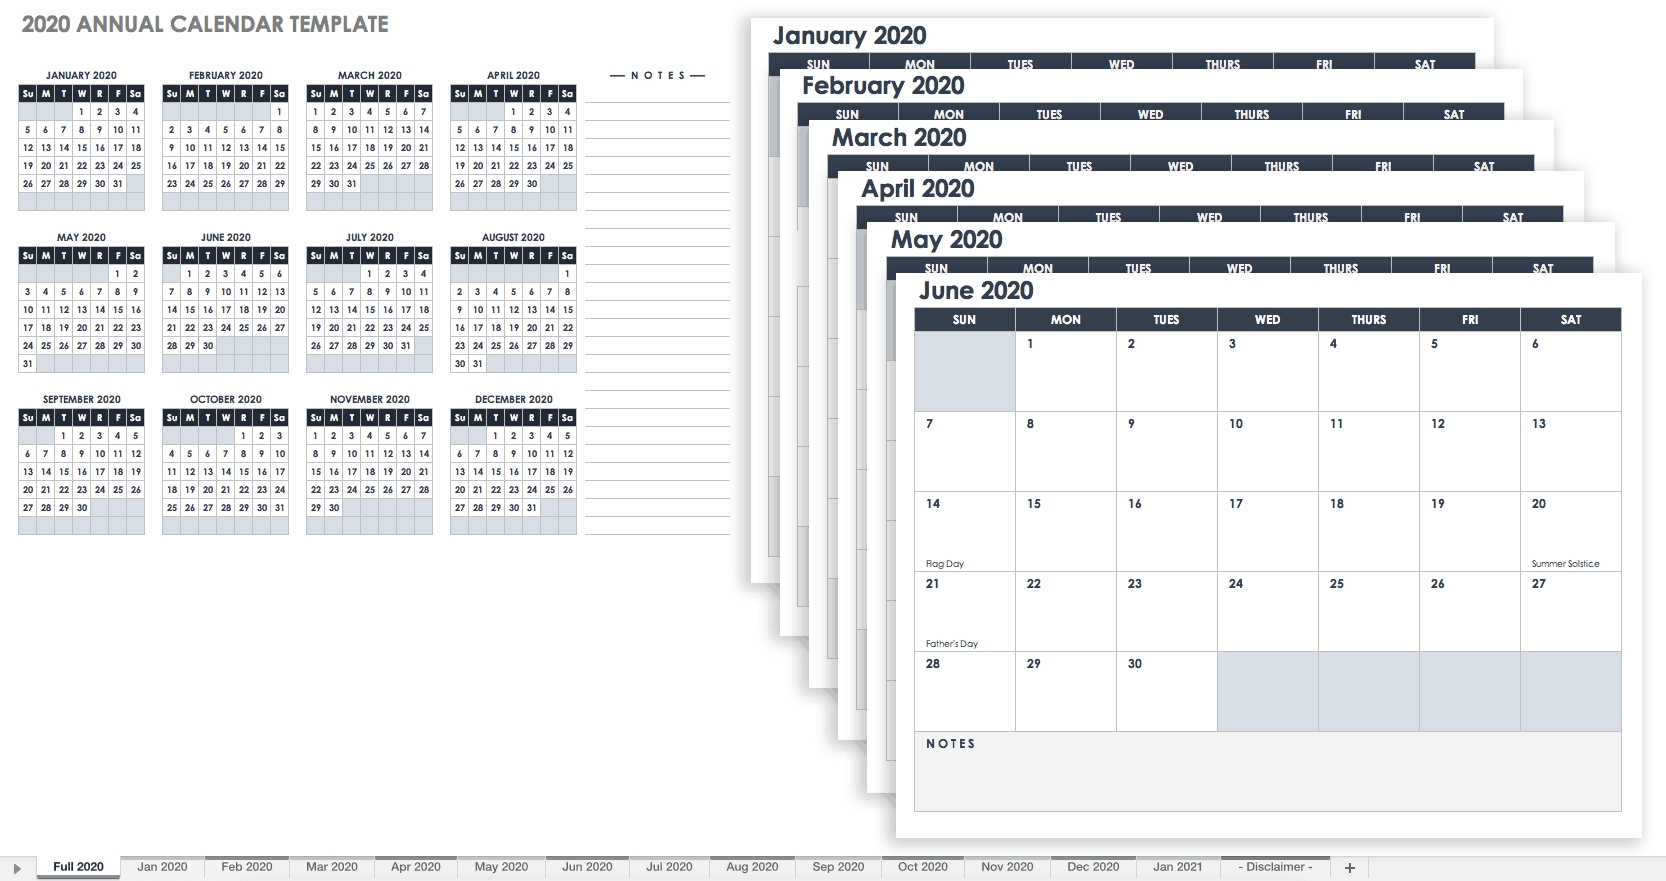 Free, Printable Excel Calendar Templates For 2019 & On | Smartsheet pertaining to Sample One Page Multi Year Calendars Image